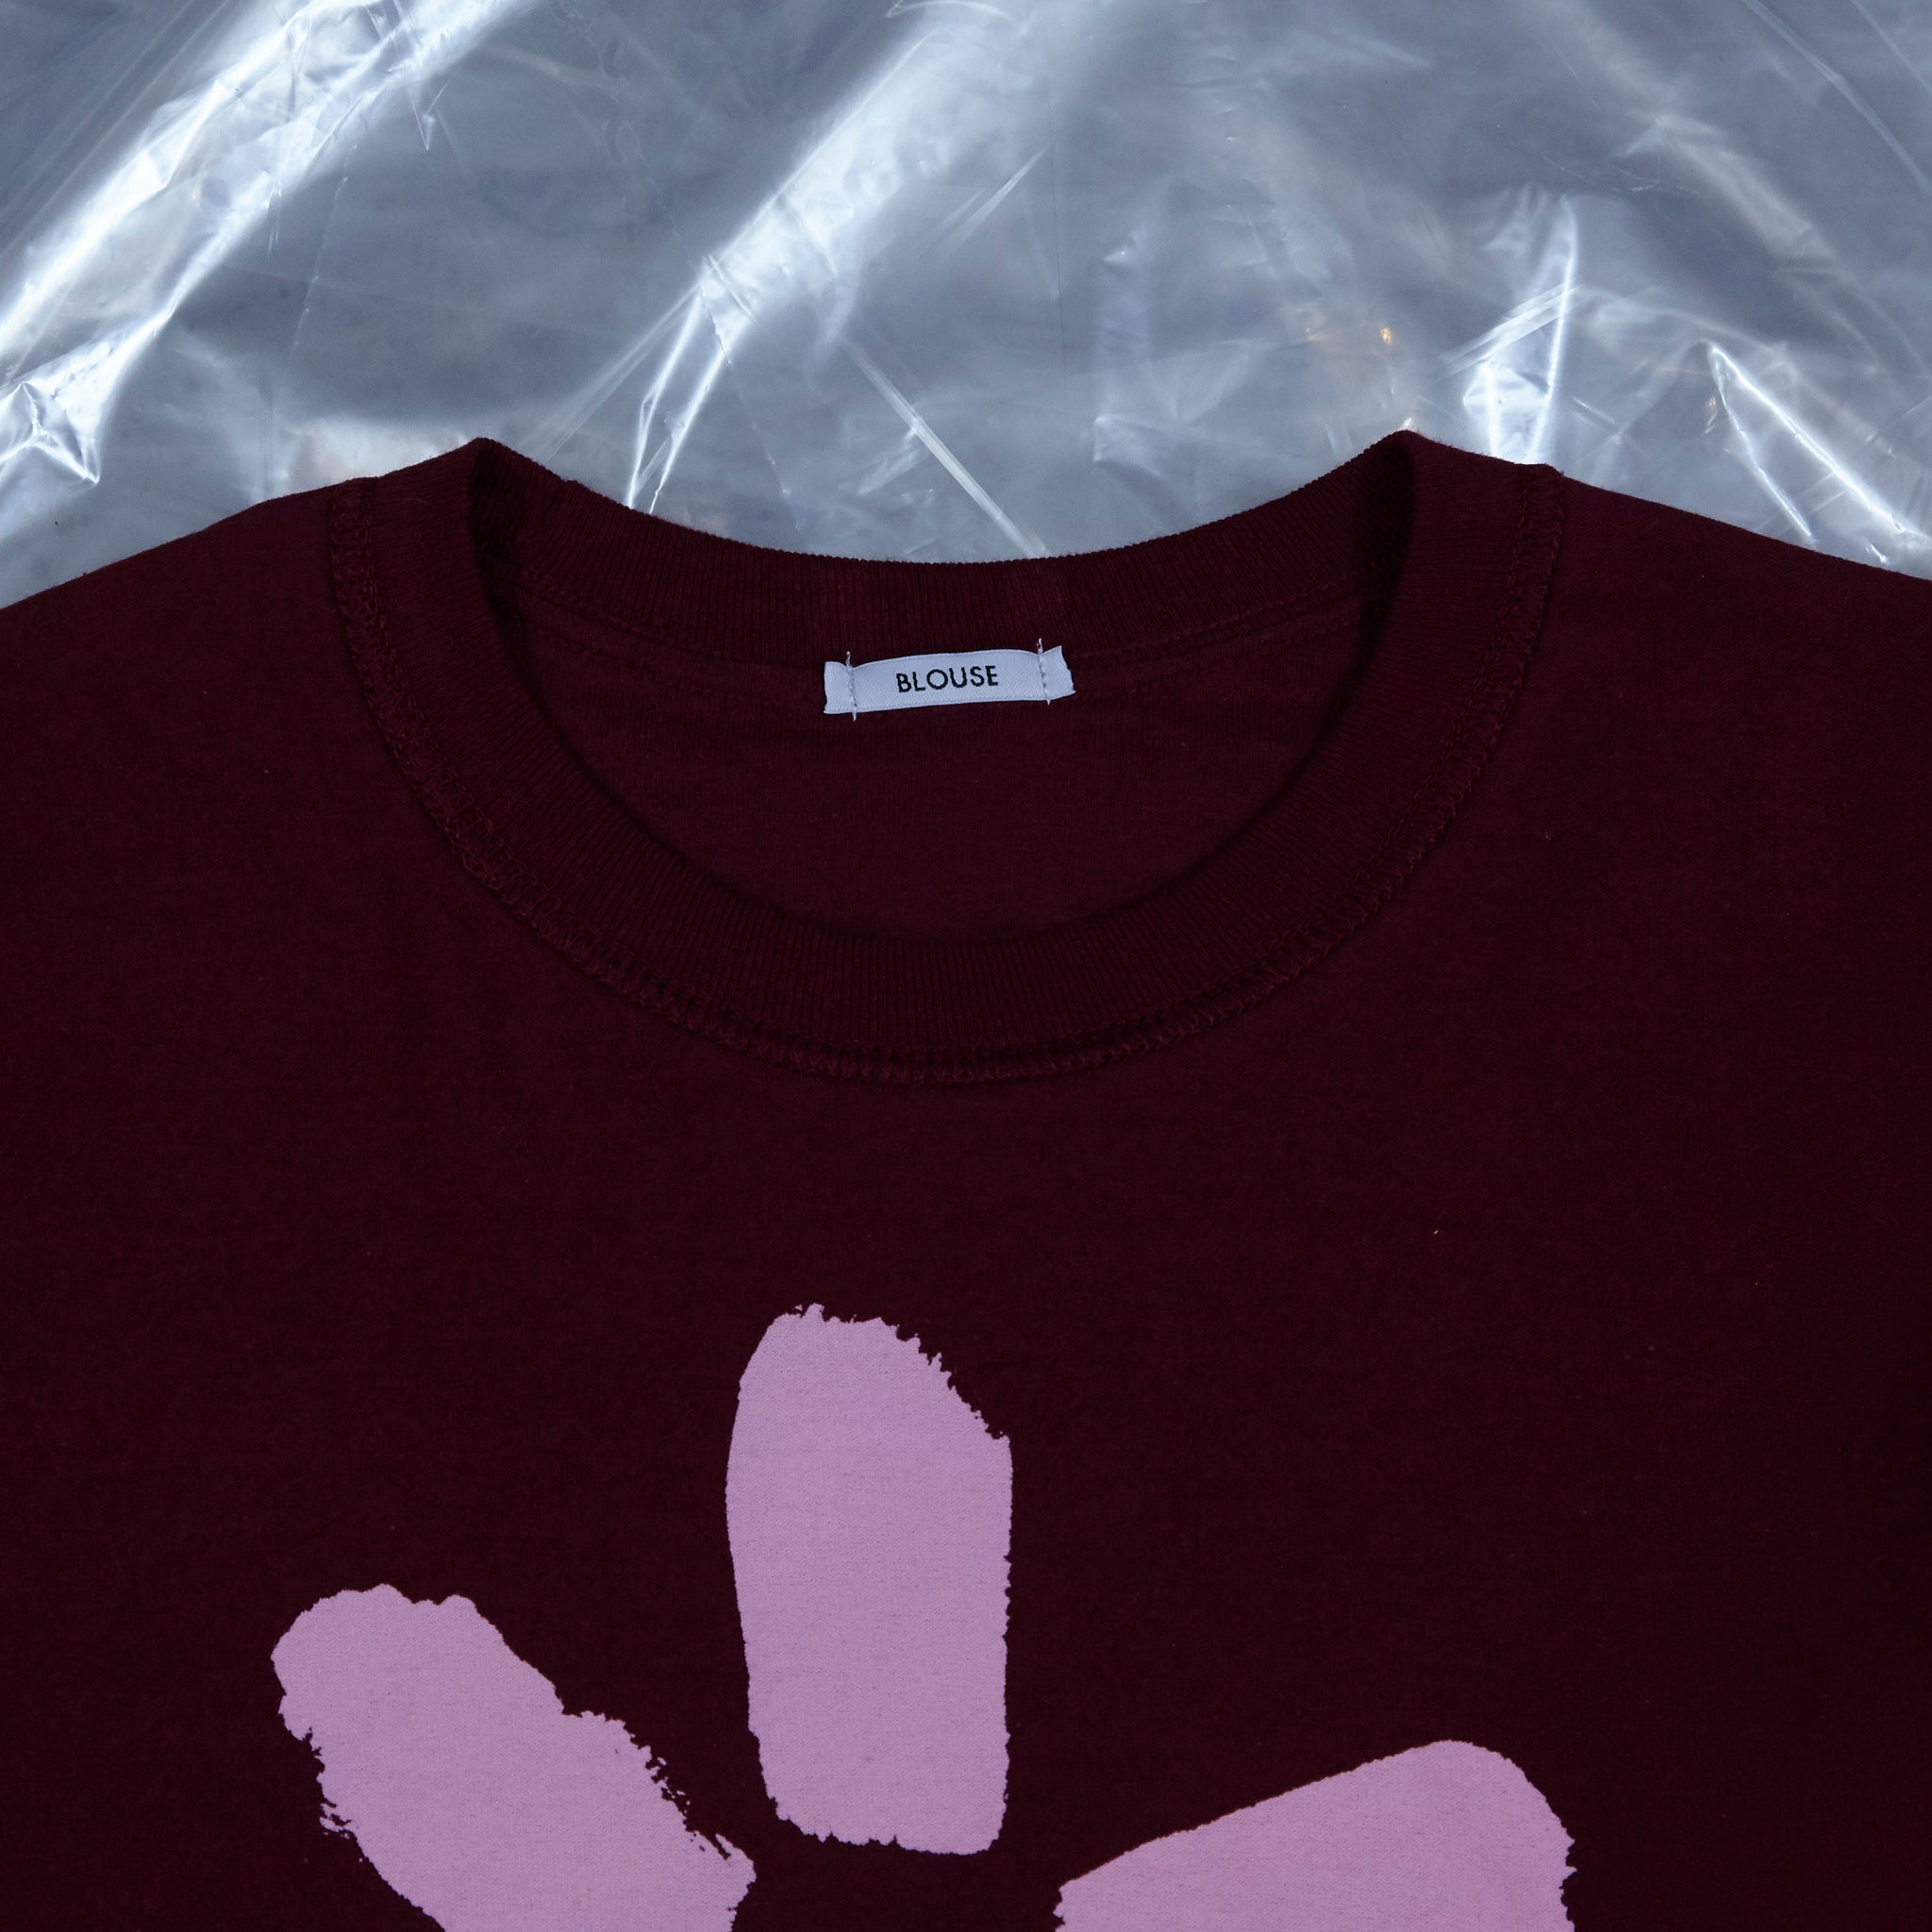 Slim Pickings Tee Maroon with Pink Vacant Daisy Flower by artist John Booth for BLOUSE by Geoffrey J Finch. Image 4.